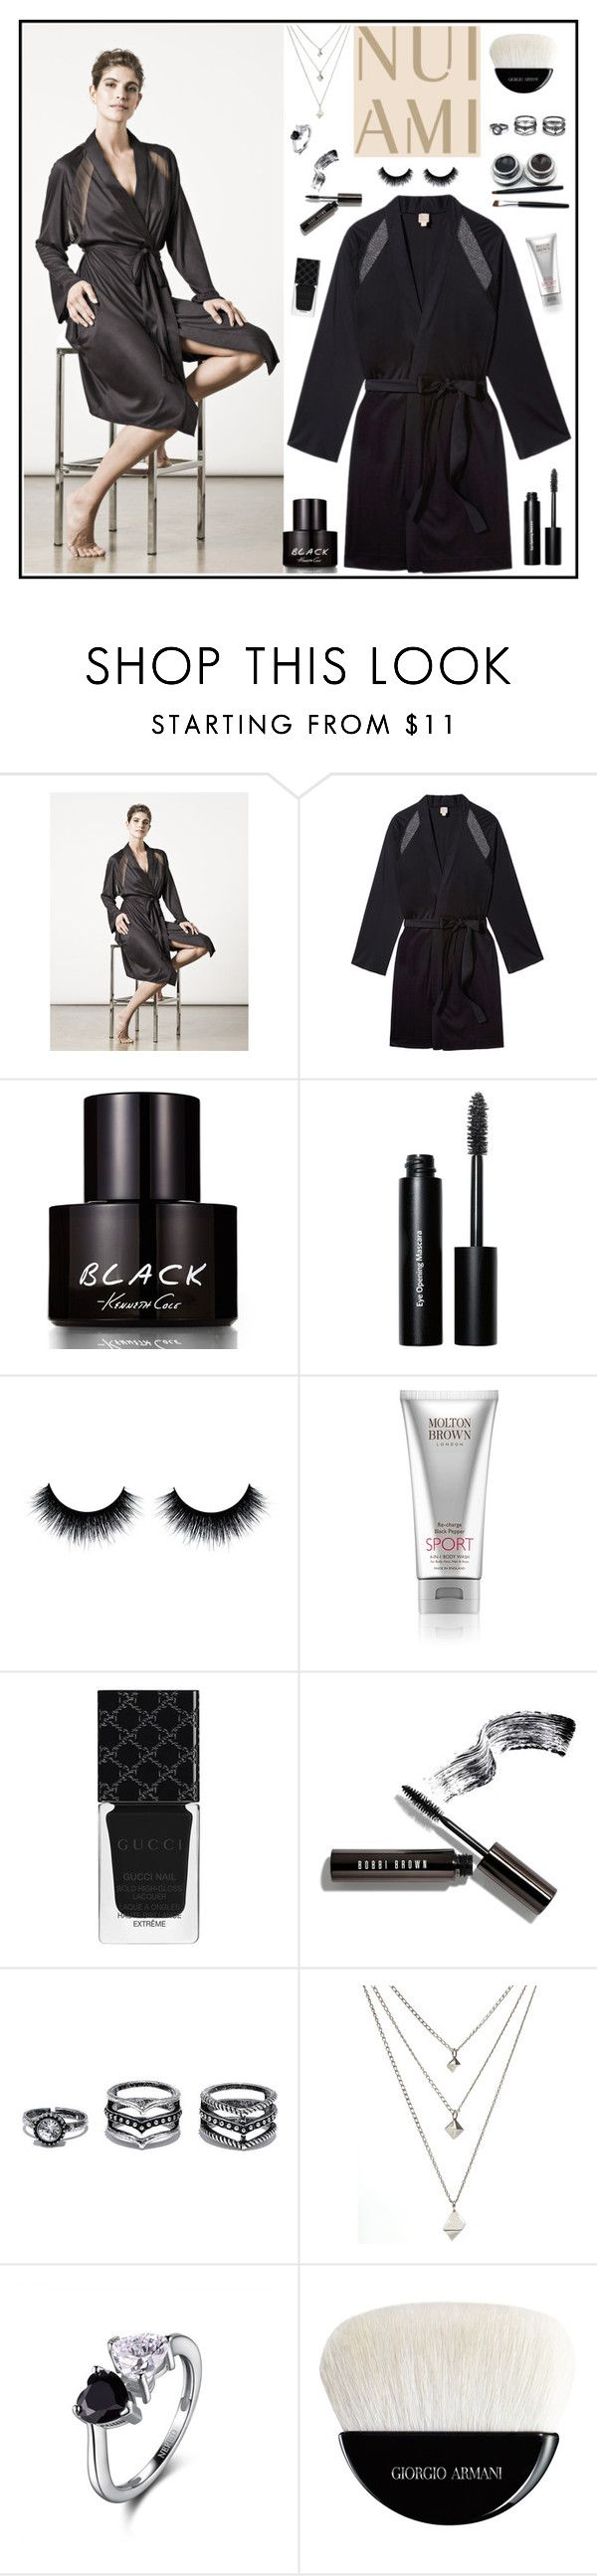 """""""Nui Ami 10"""" by gaby-mil ❤ liked on Polyvore featuring Kenneth Cole, Bobbi Brown Cosmetics, Molton Brown, Gucci, Lulu*s, Giorgio Armani, robe and nuiami"""